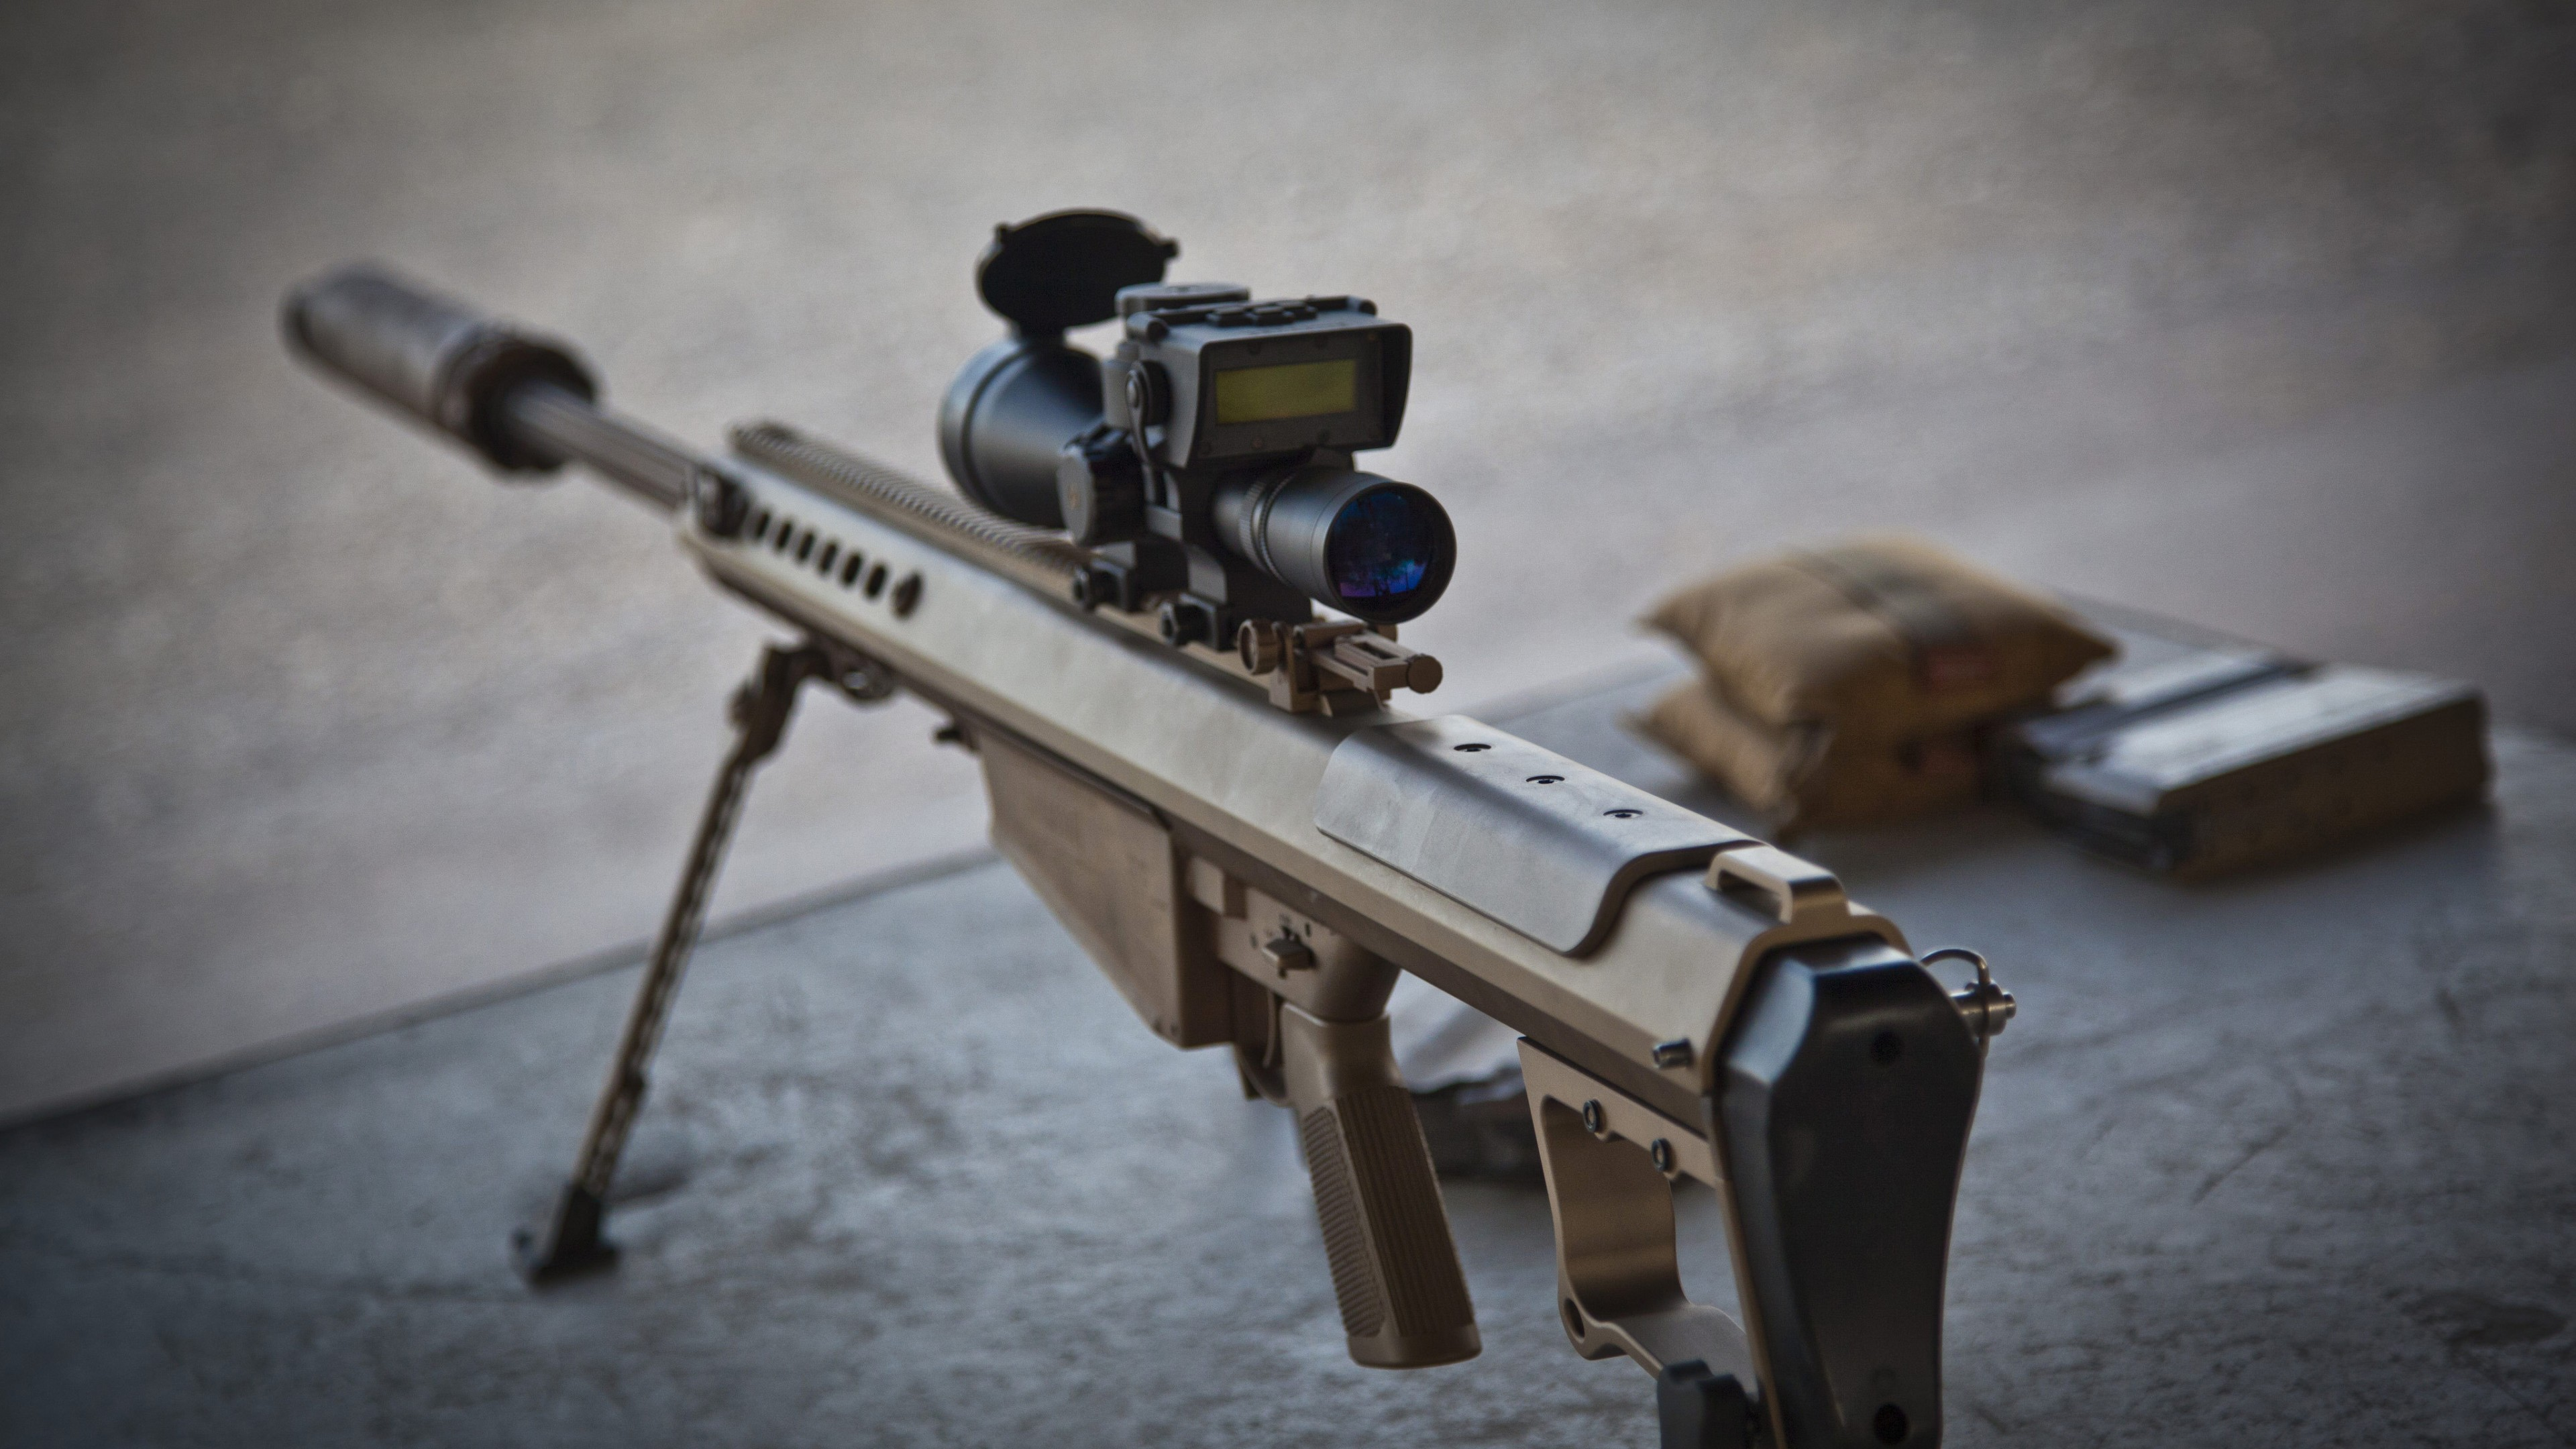 Anti Materiel Rifle wallpaper barrett, m82a1, m107, m82, light fifty, anti